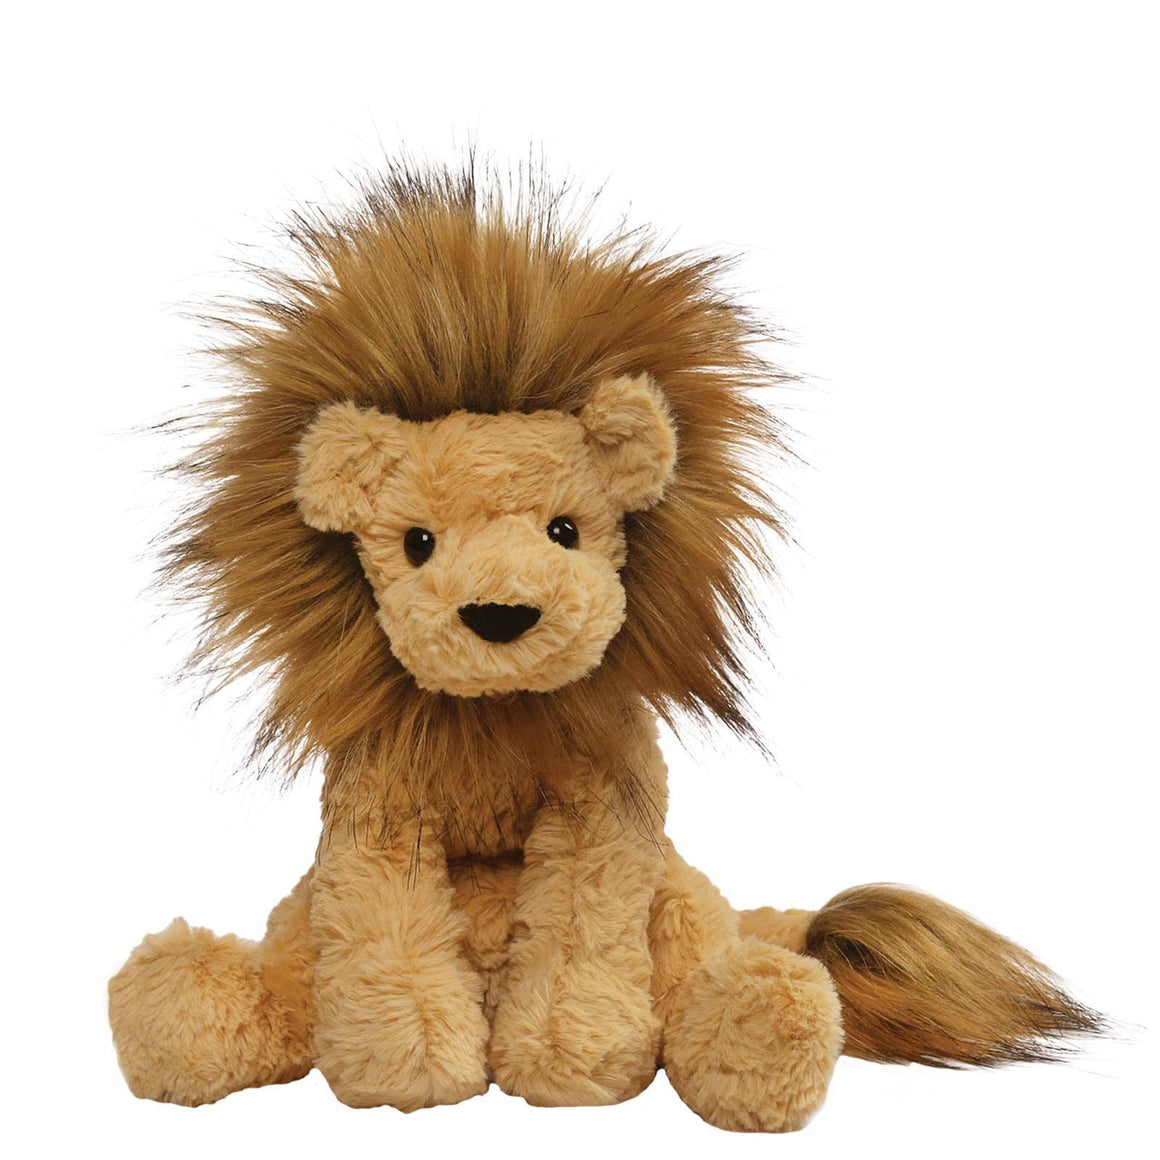 Cozys Lion Small Soft Toy by Gund